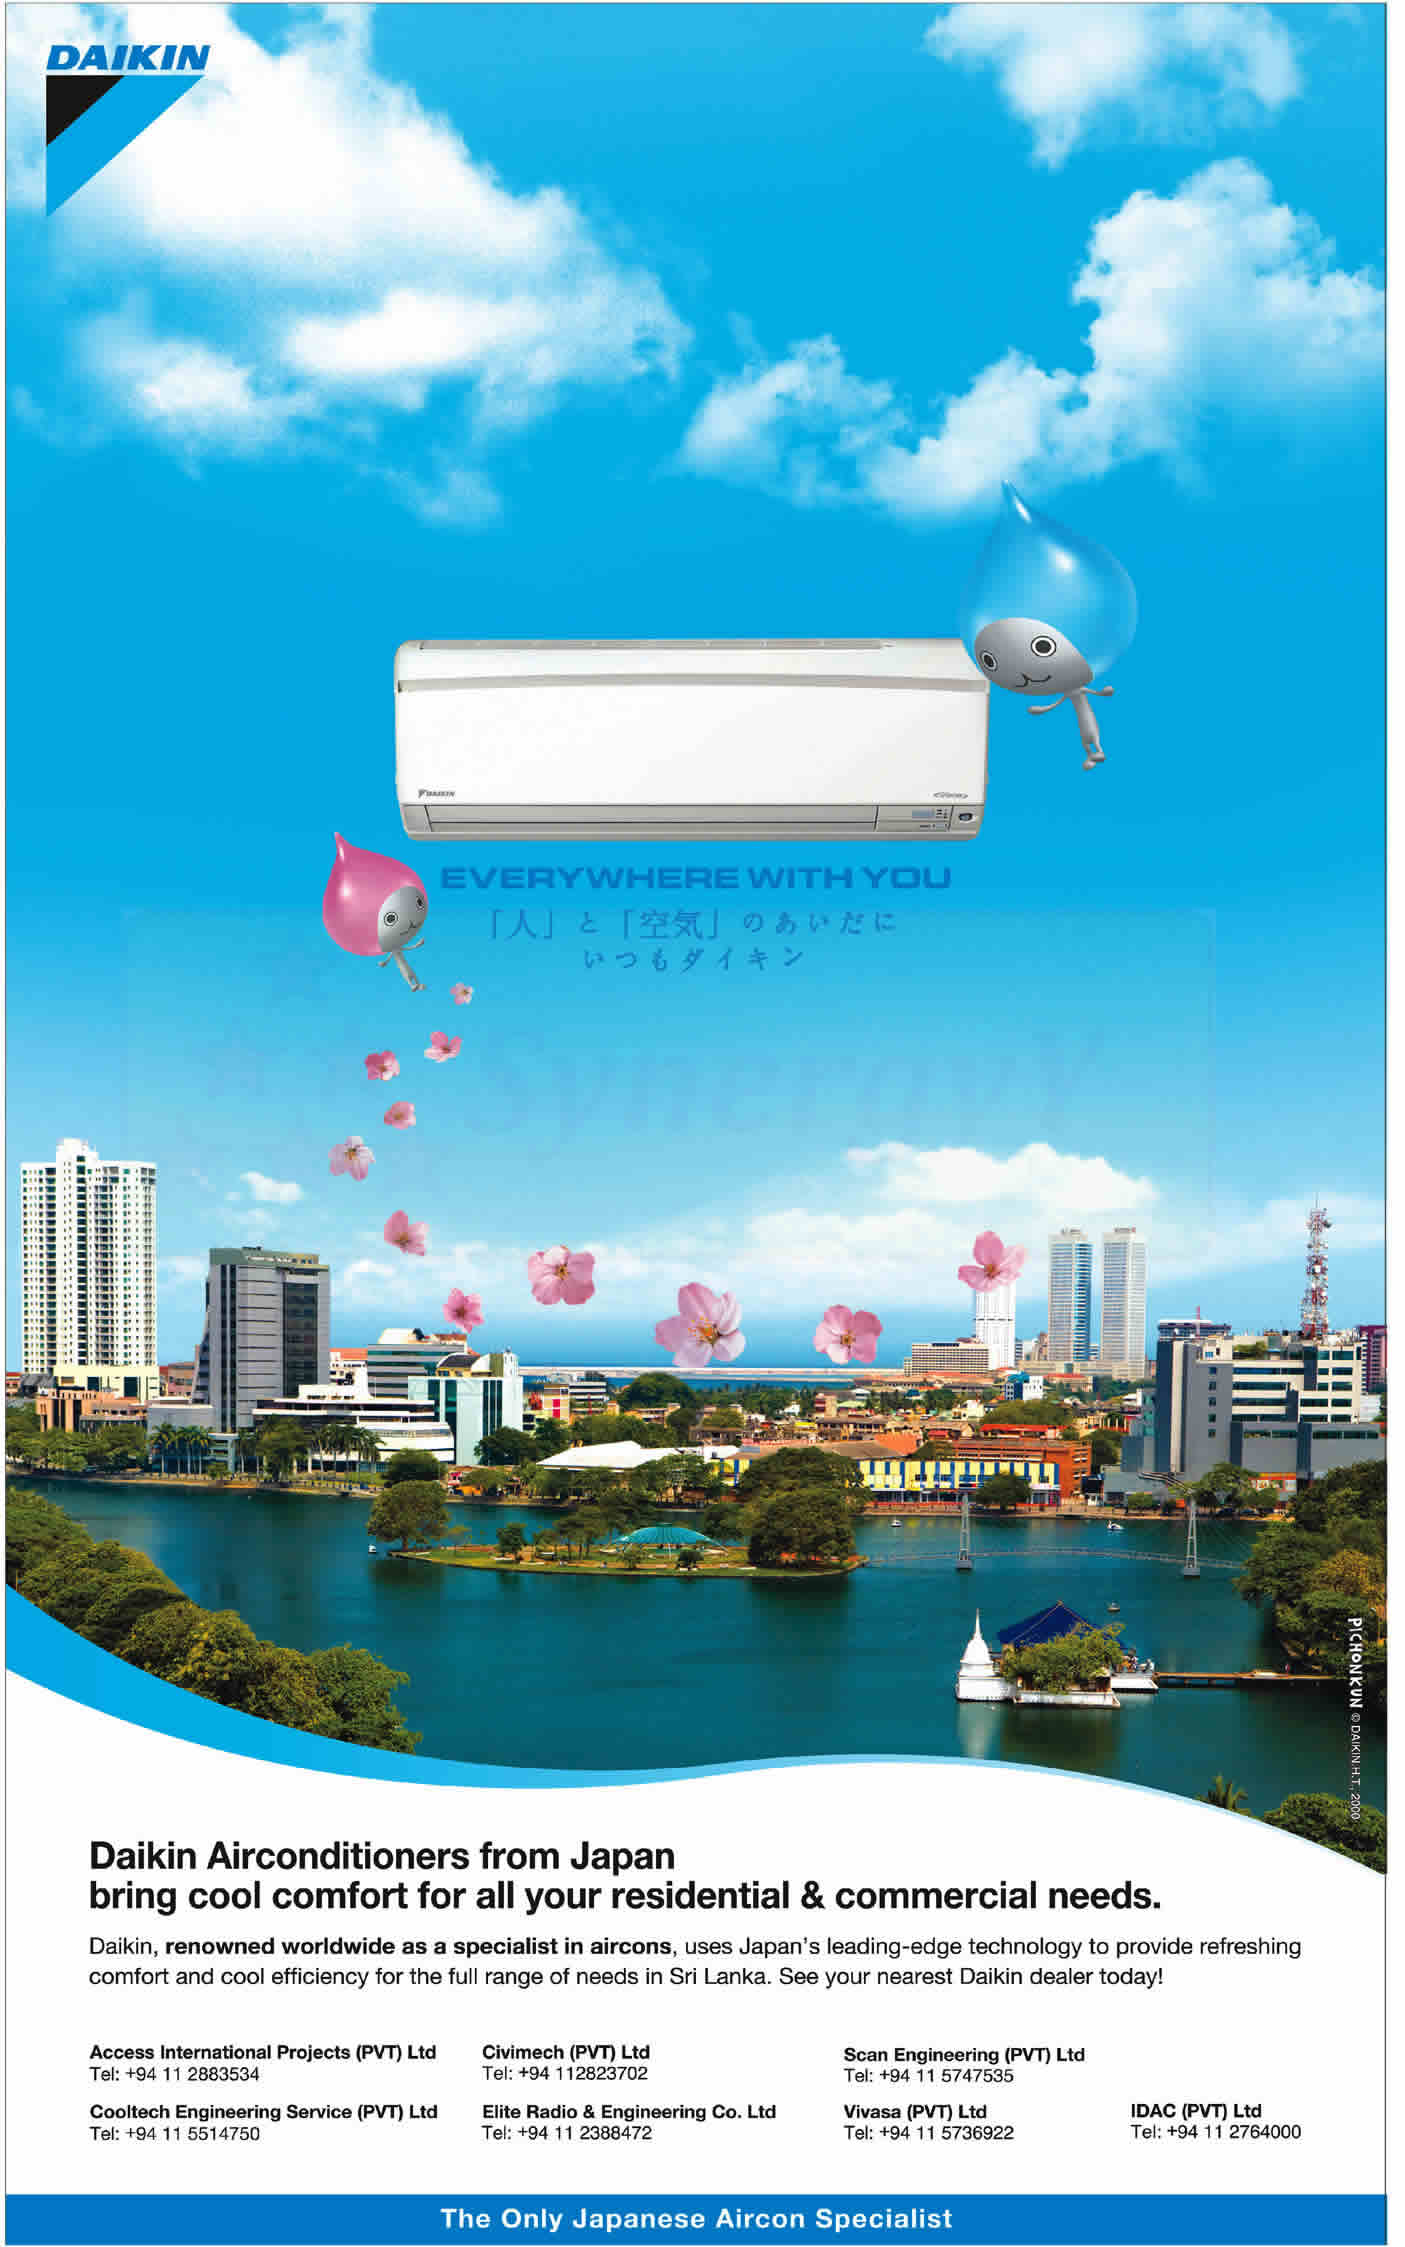 Daikin Air Conditioner In Srilanka 171 Synergyy